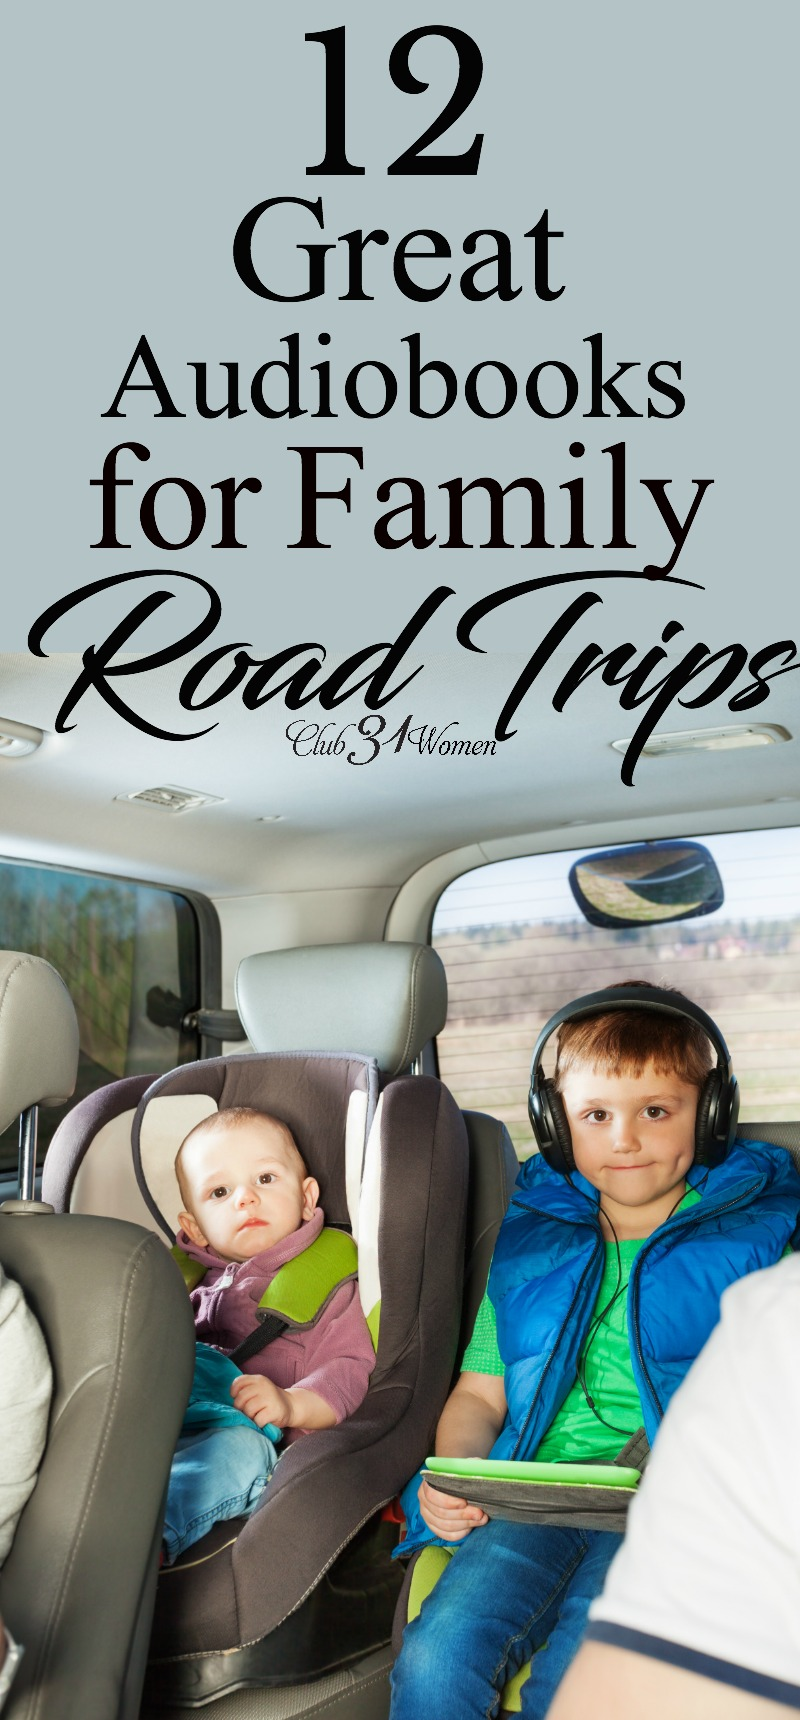 What can be better than getting lost in a story while on a long family road trip? There are so many great adventures to choose from! Here's a list to start! via @Club31Women